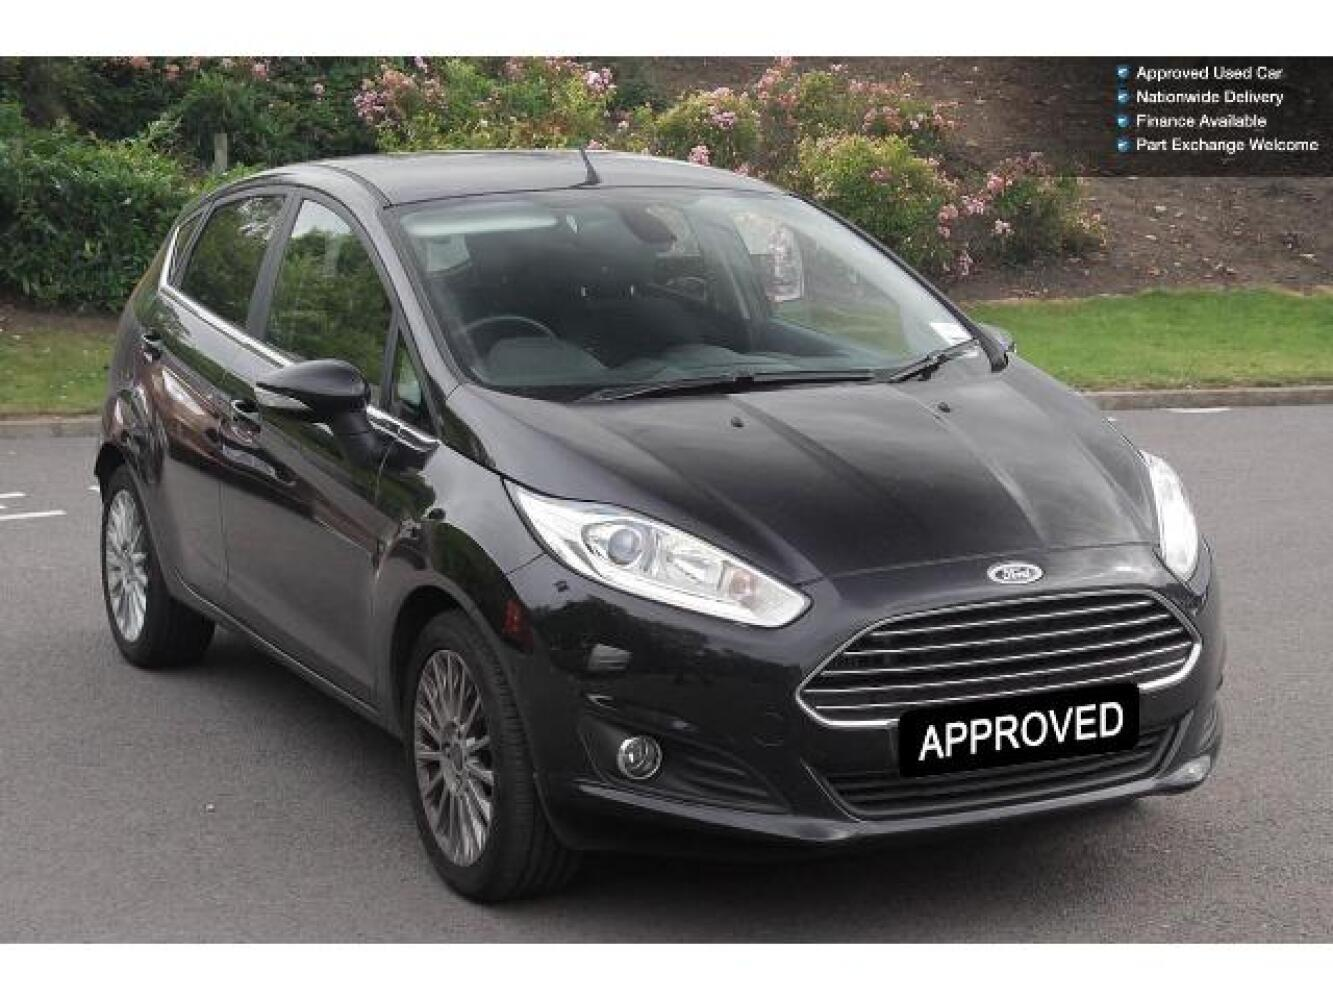 used ford fiesta 1 0 ecoboost 125 titanium 5dr petrol hatchback for sale farnell land rover. Black Bedroom Furniture Sets. Home Design Ideas